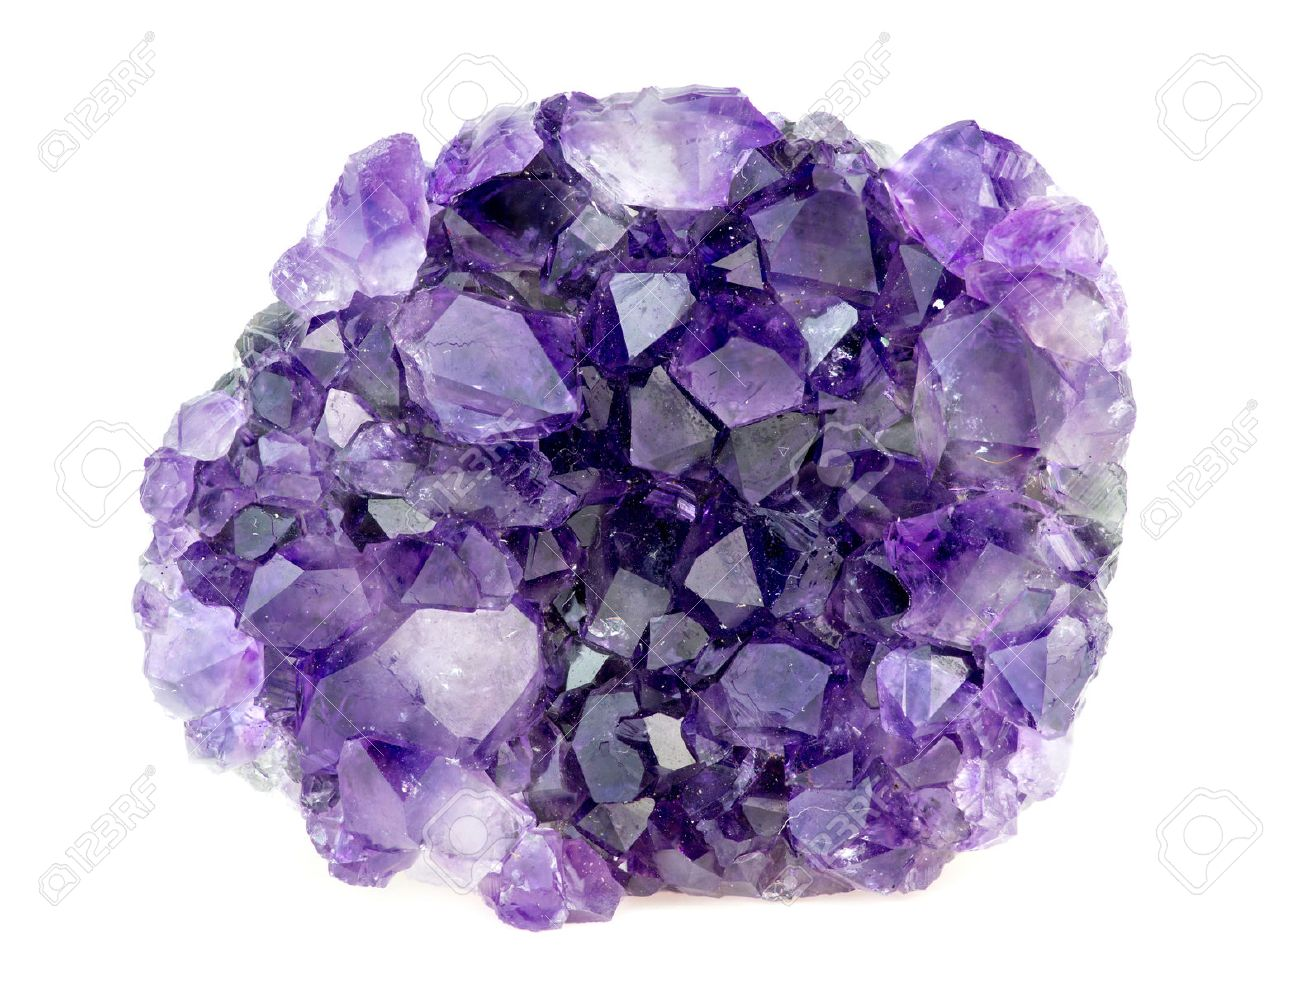 decoration violet amazon druzy cluster crystal quartz kitchen amethyst gemstone dp natural geode home purple rockcloud specimen com